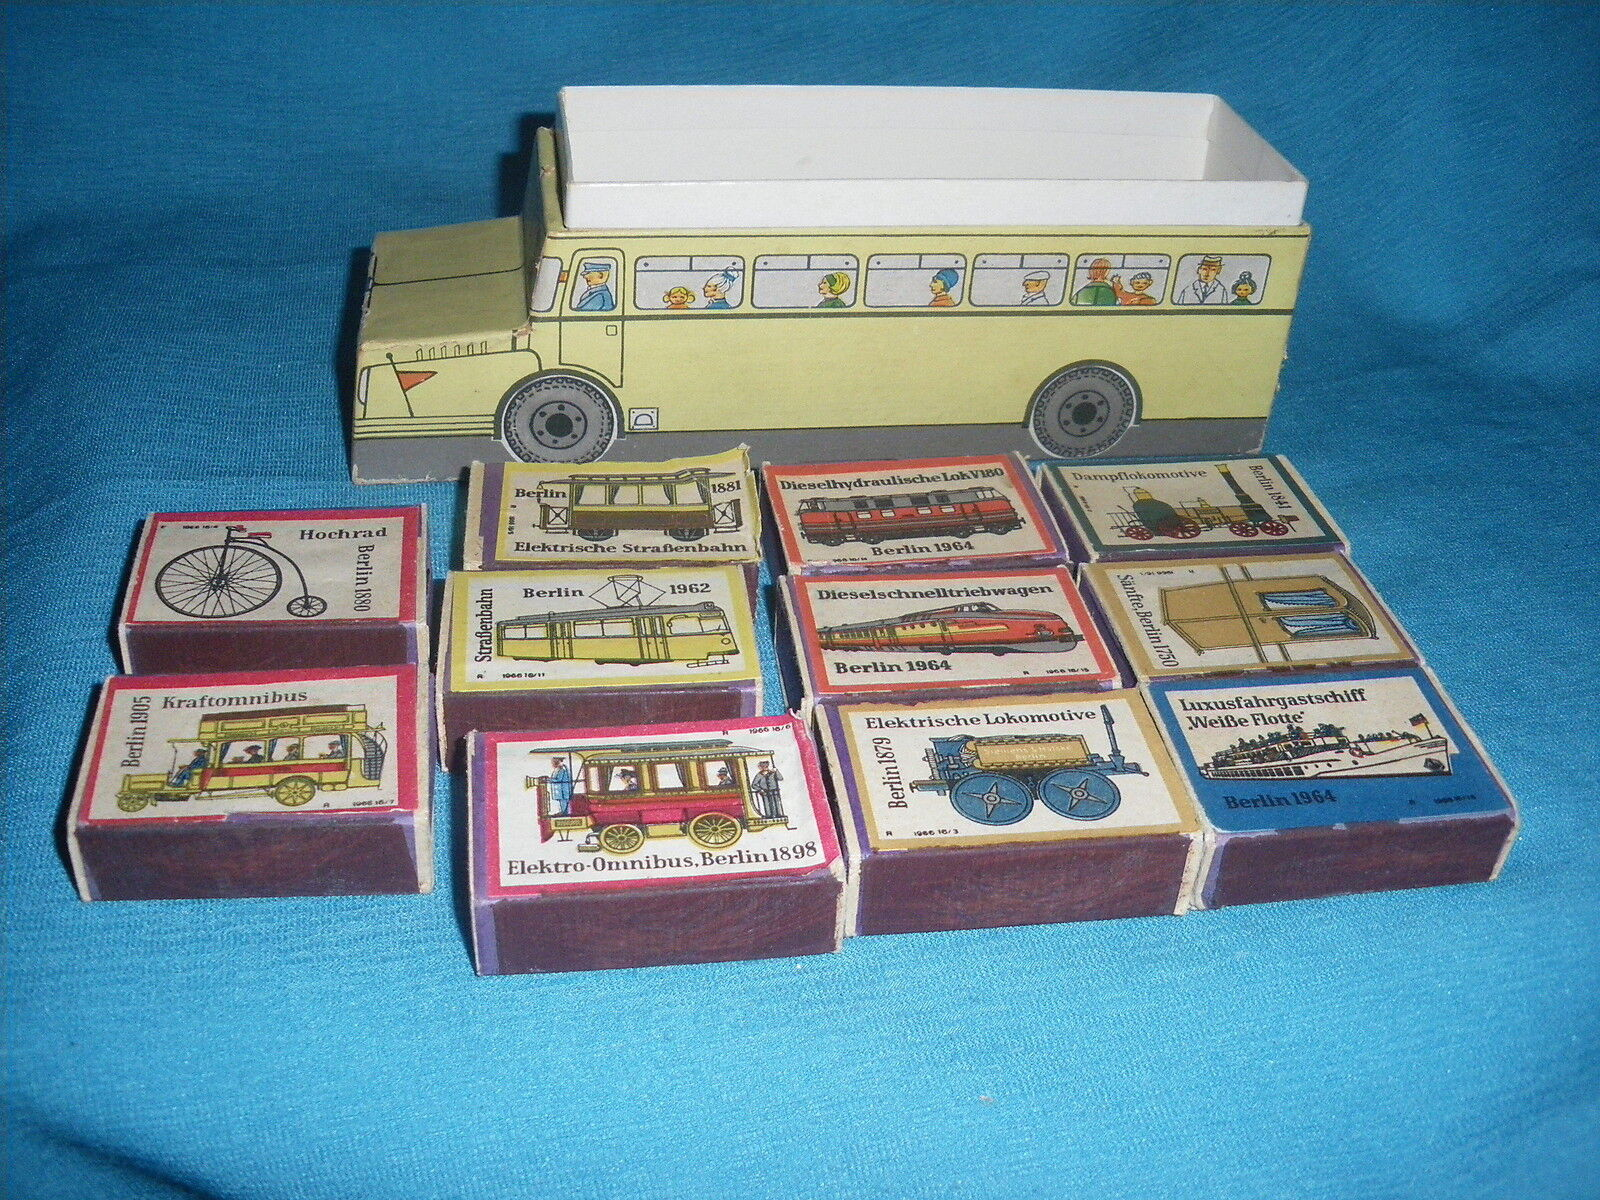 702A Vintage Box Cardboard Bus Consumption Zundwarenwerk Riesa 20 6 7 Transport